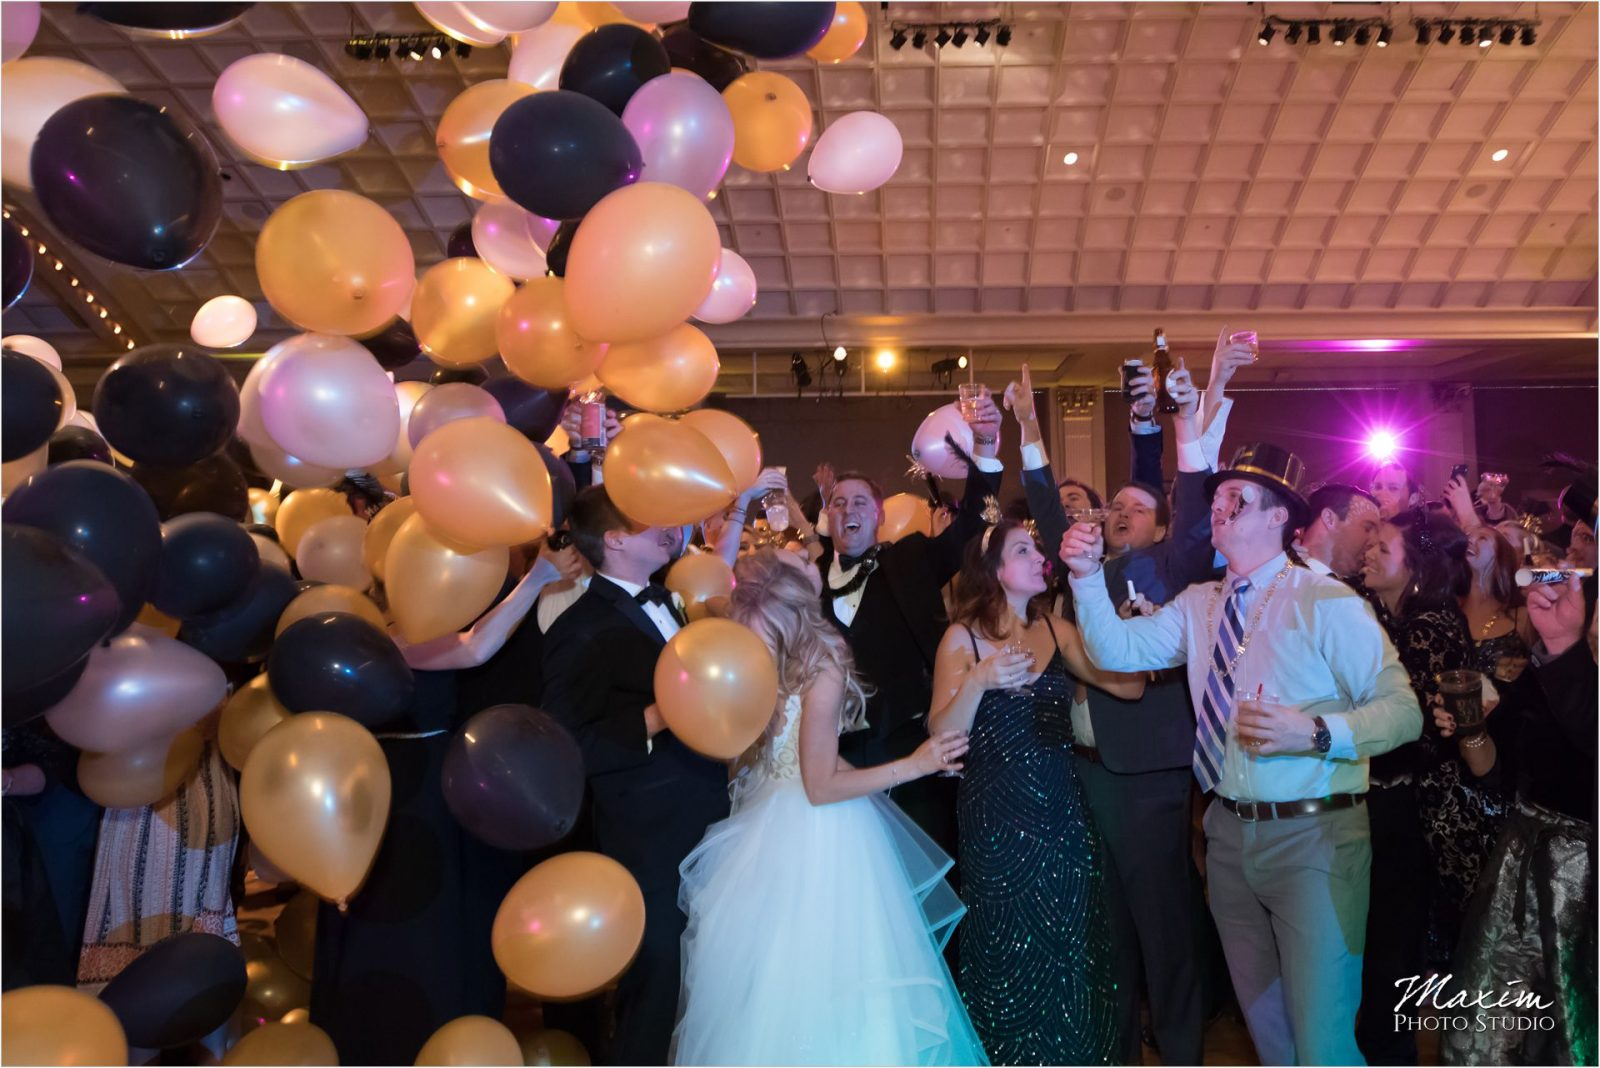 Cincinnati Music Hall Ballroom Wedding Reception Dance Balloon drop